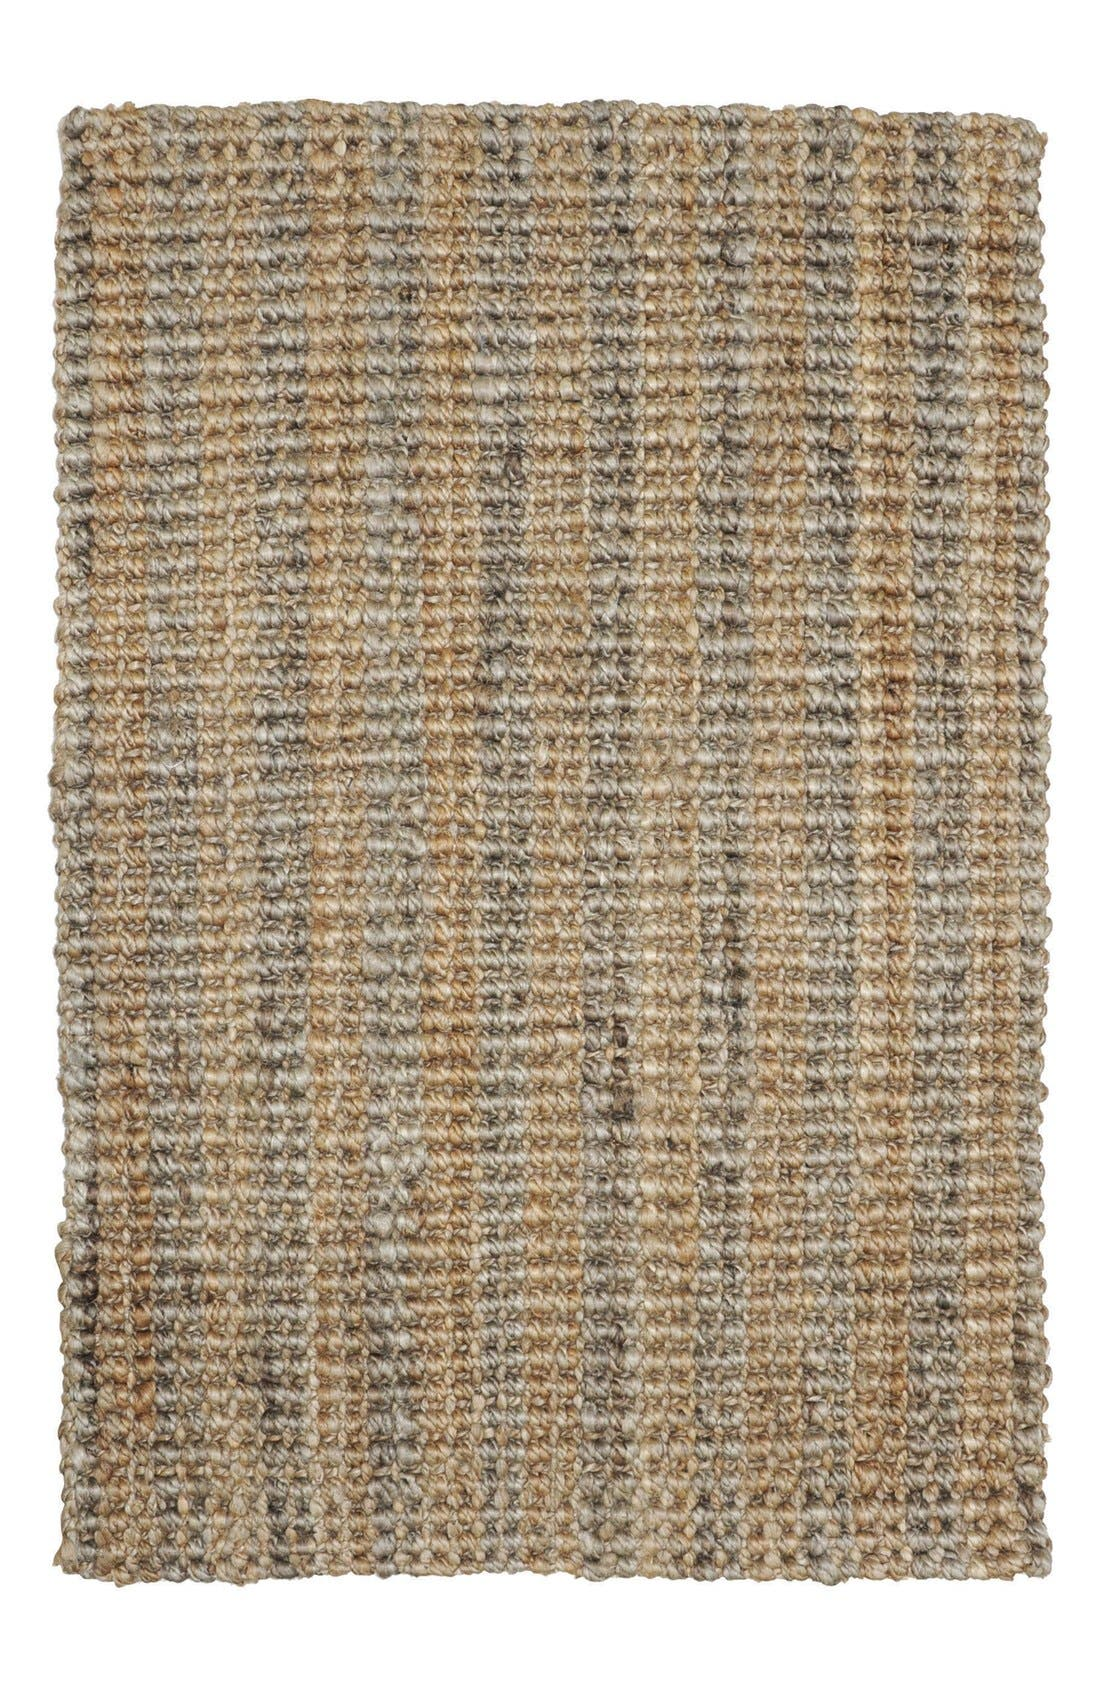 Alternate Image 1 Selected - Villa Home Collection Bouclé Handwoven Rug